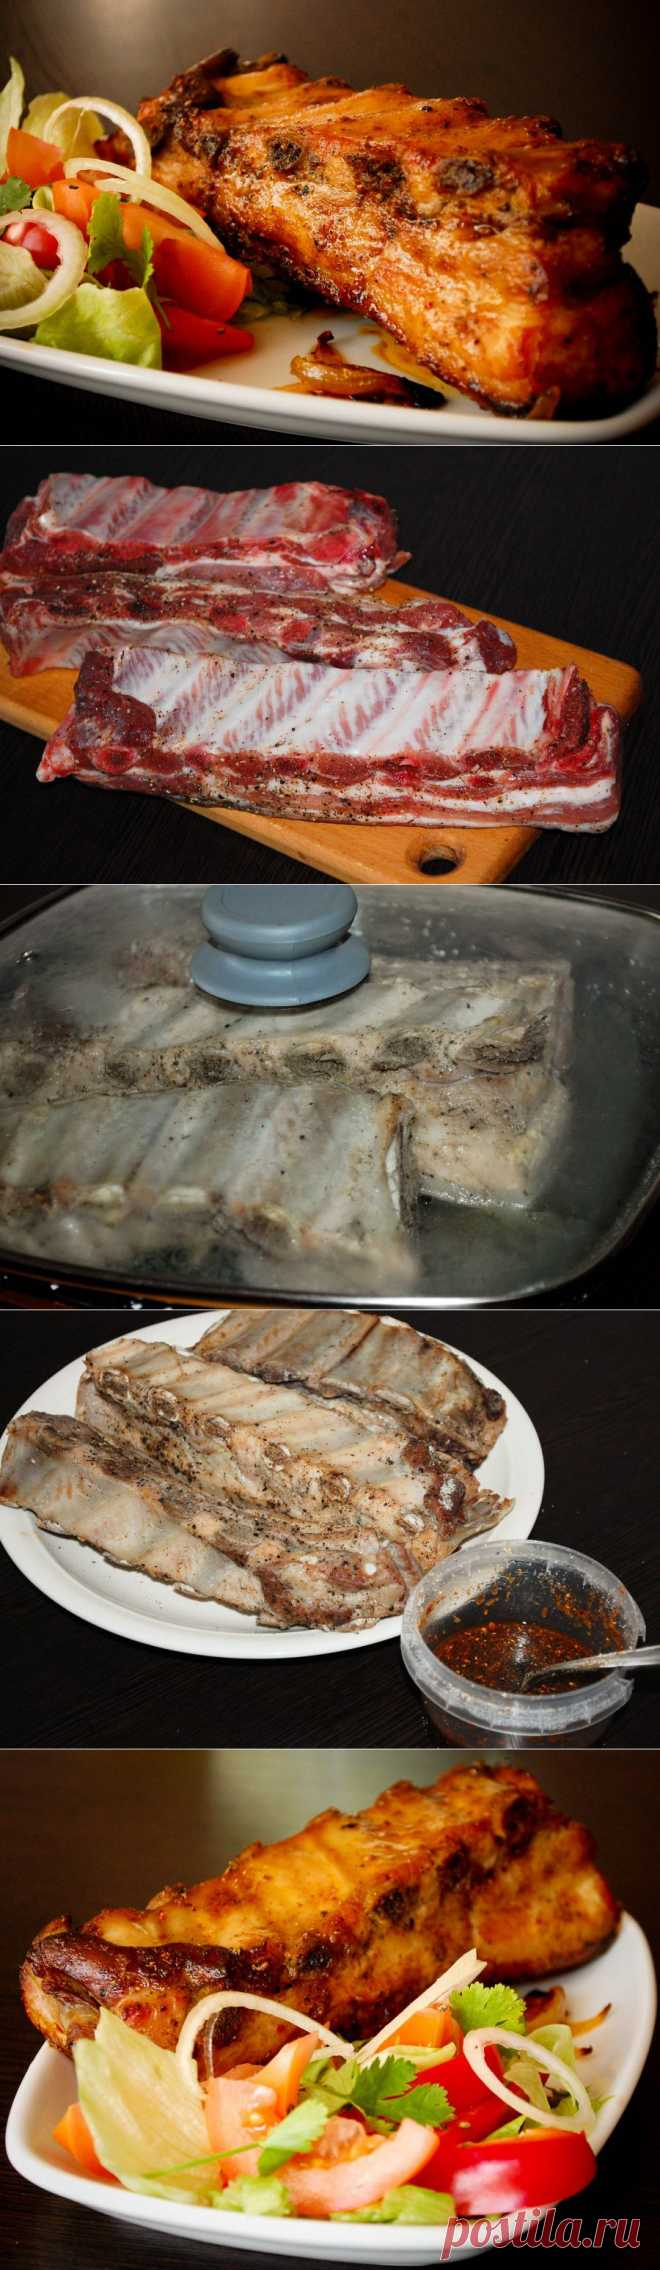 PORK RIBS FROM THE OVEN.